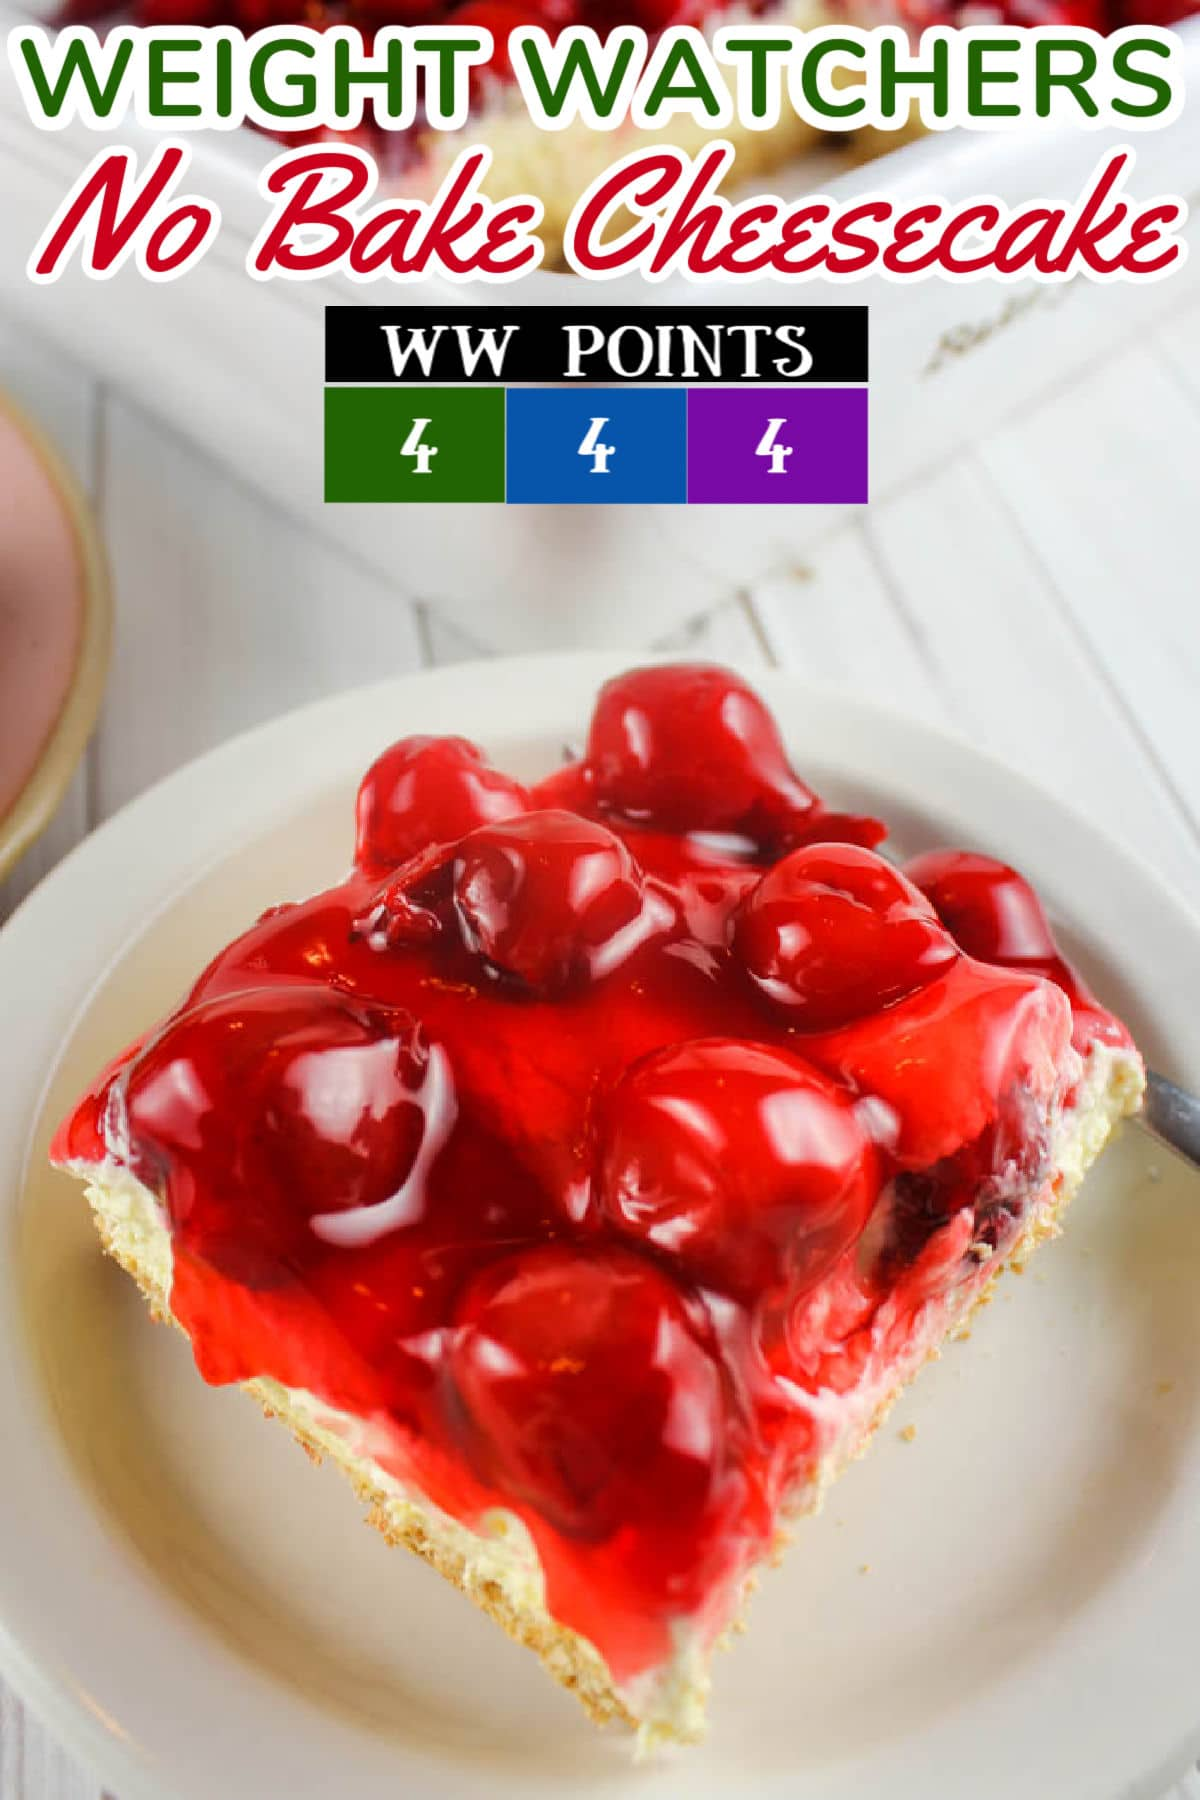 Weight Watchers No Bake Cheesecake is an easy-to-make, delicious dessert that actually fits into a diet plan! I'm a big fan of cherry pie filling for the topper - doesn't it look amazing?!  via @foodhussy